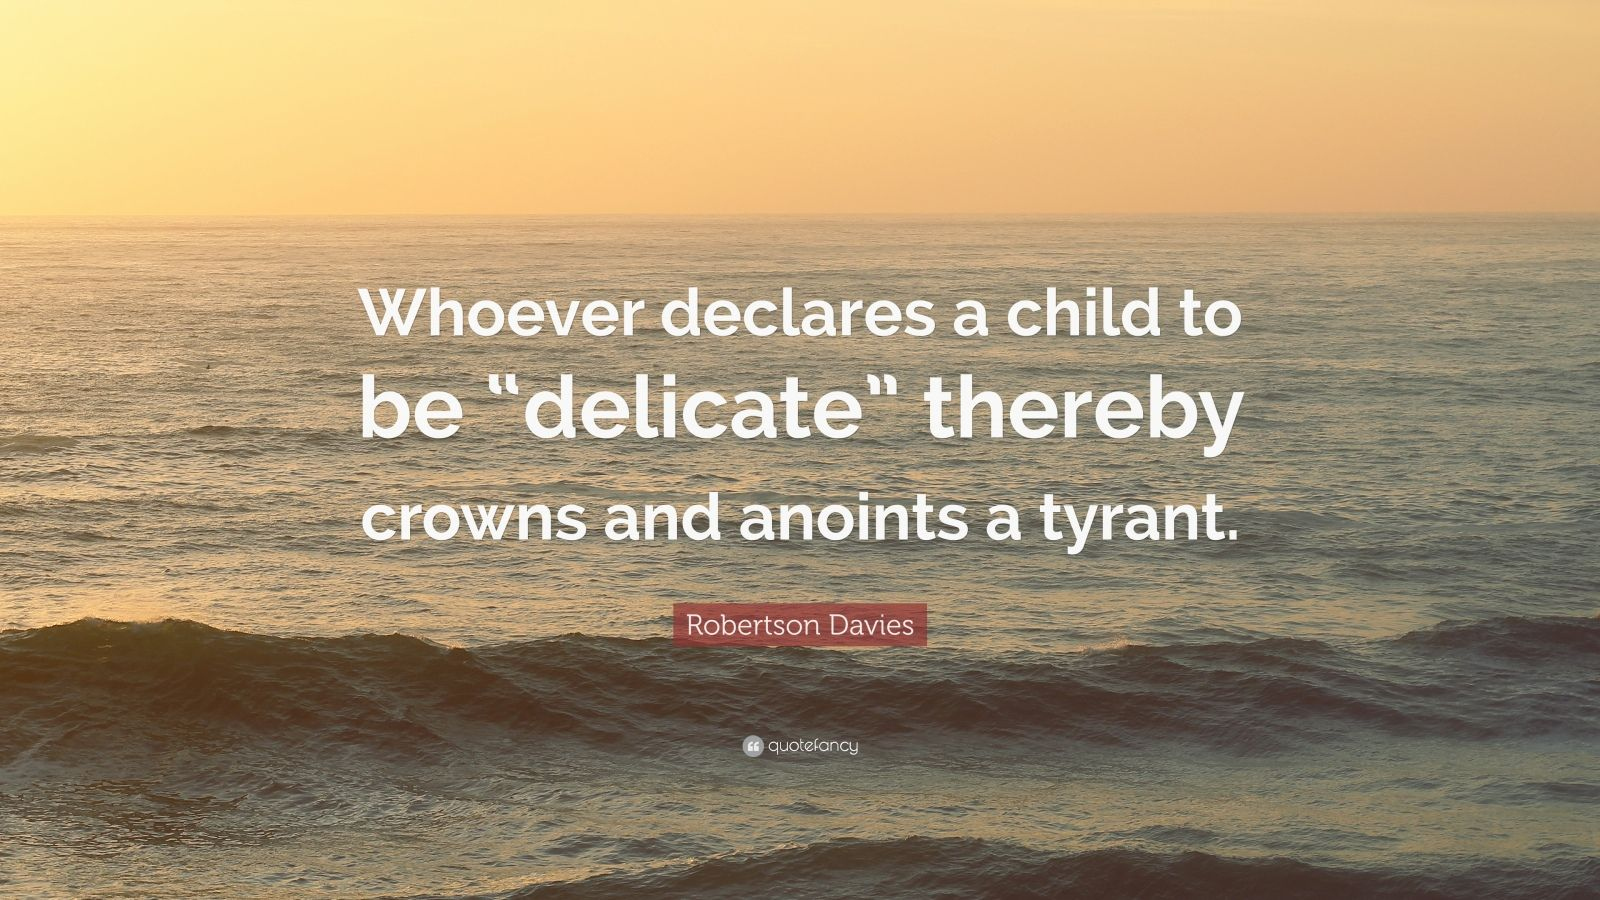 """Robertson Davies Quote: """"Whoever declares a child to be """"delicate"""" thereby crowns and anoints a tyrant."""""""